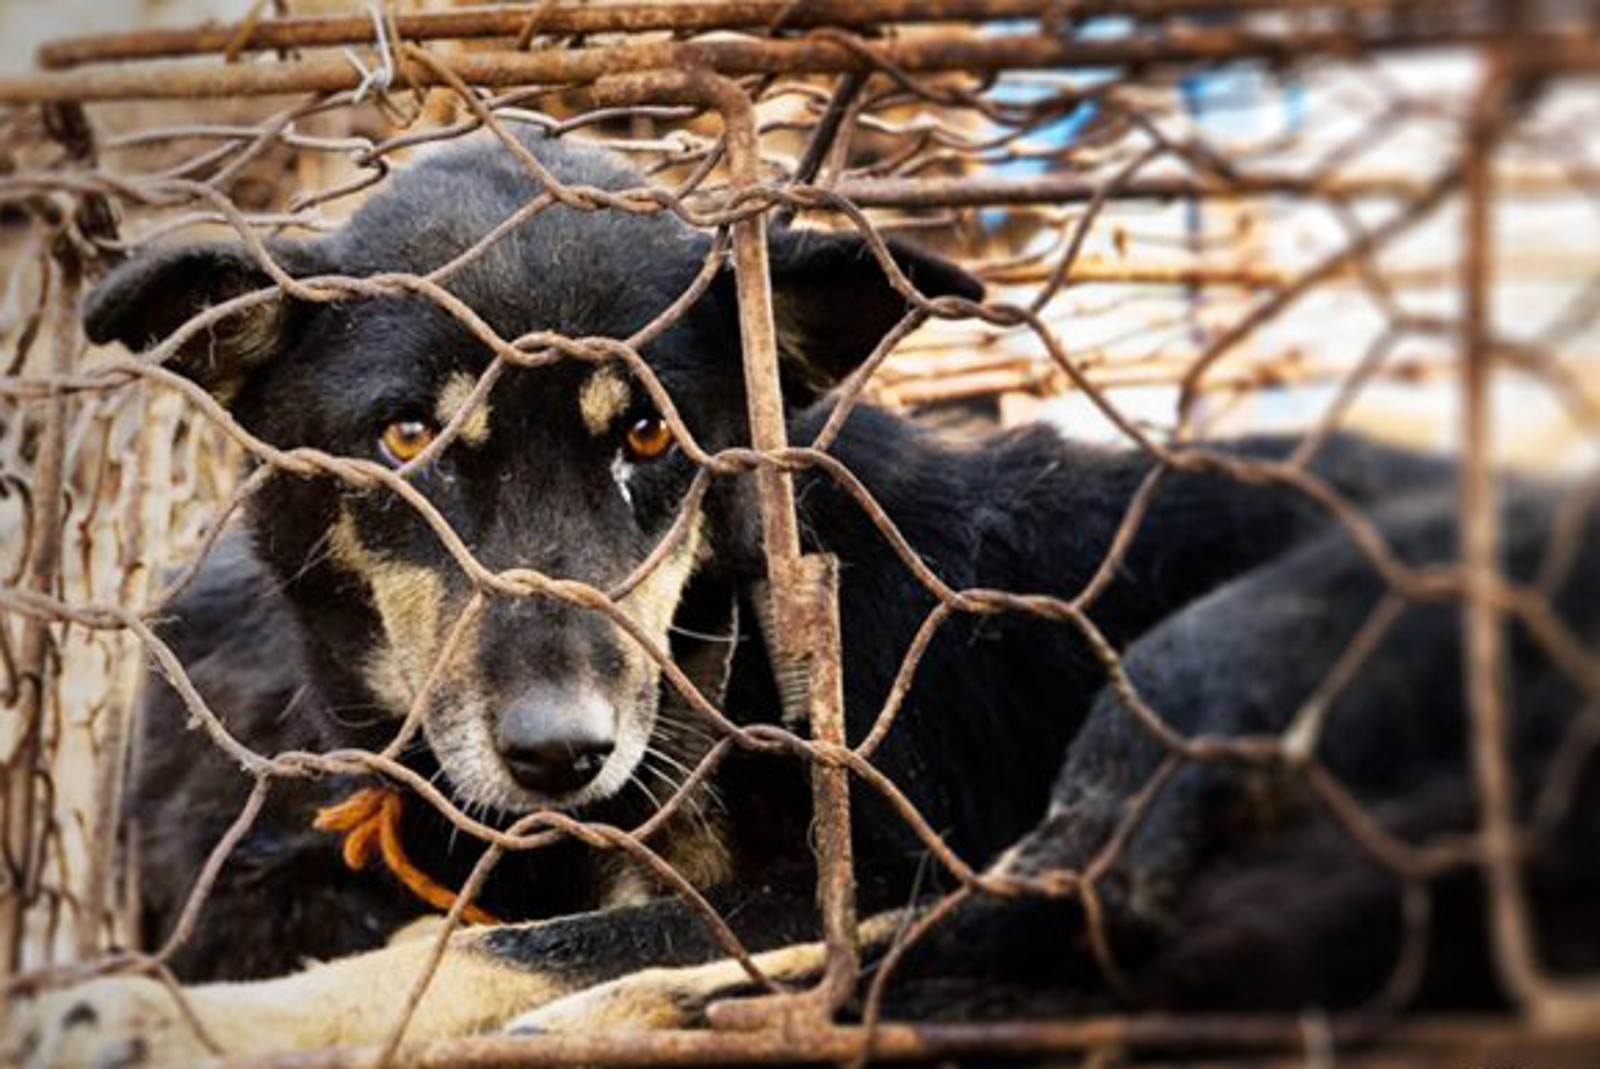 How the Yulin Dog Meat Festival is a Wake Up Call for the World